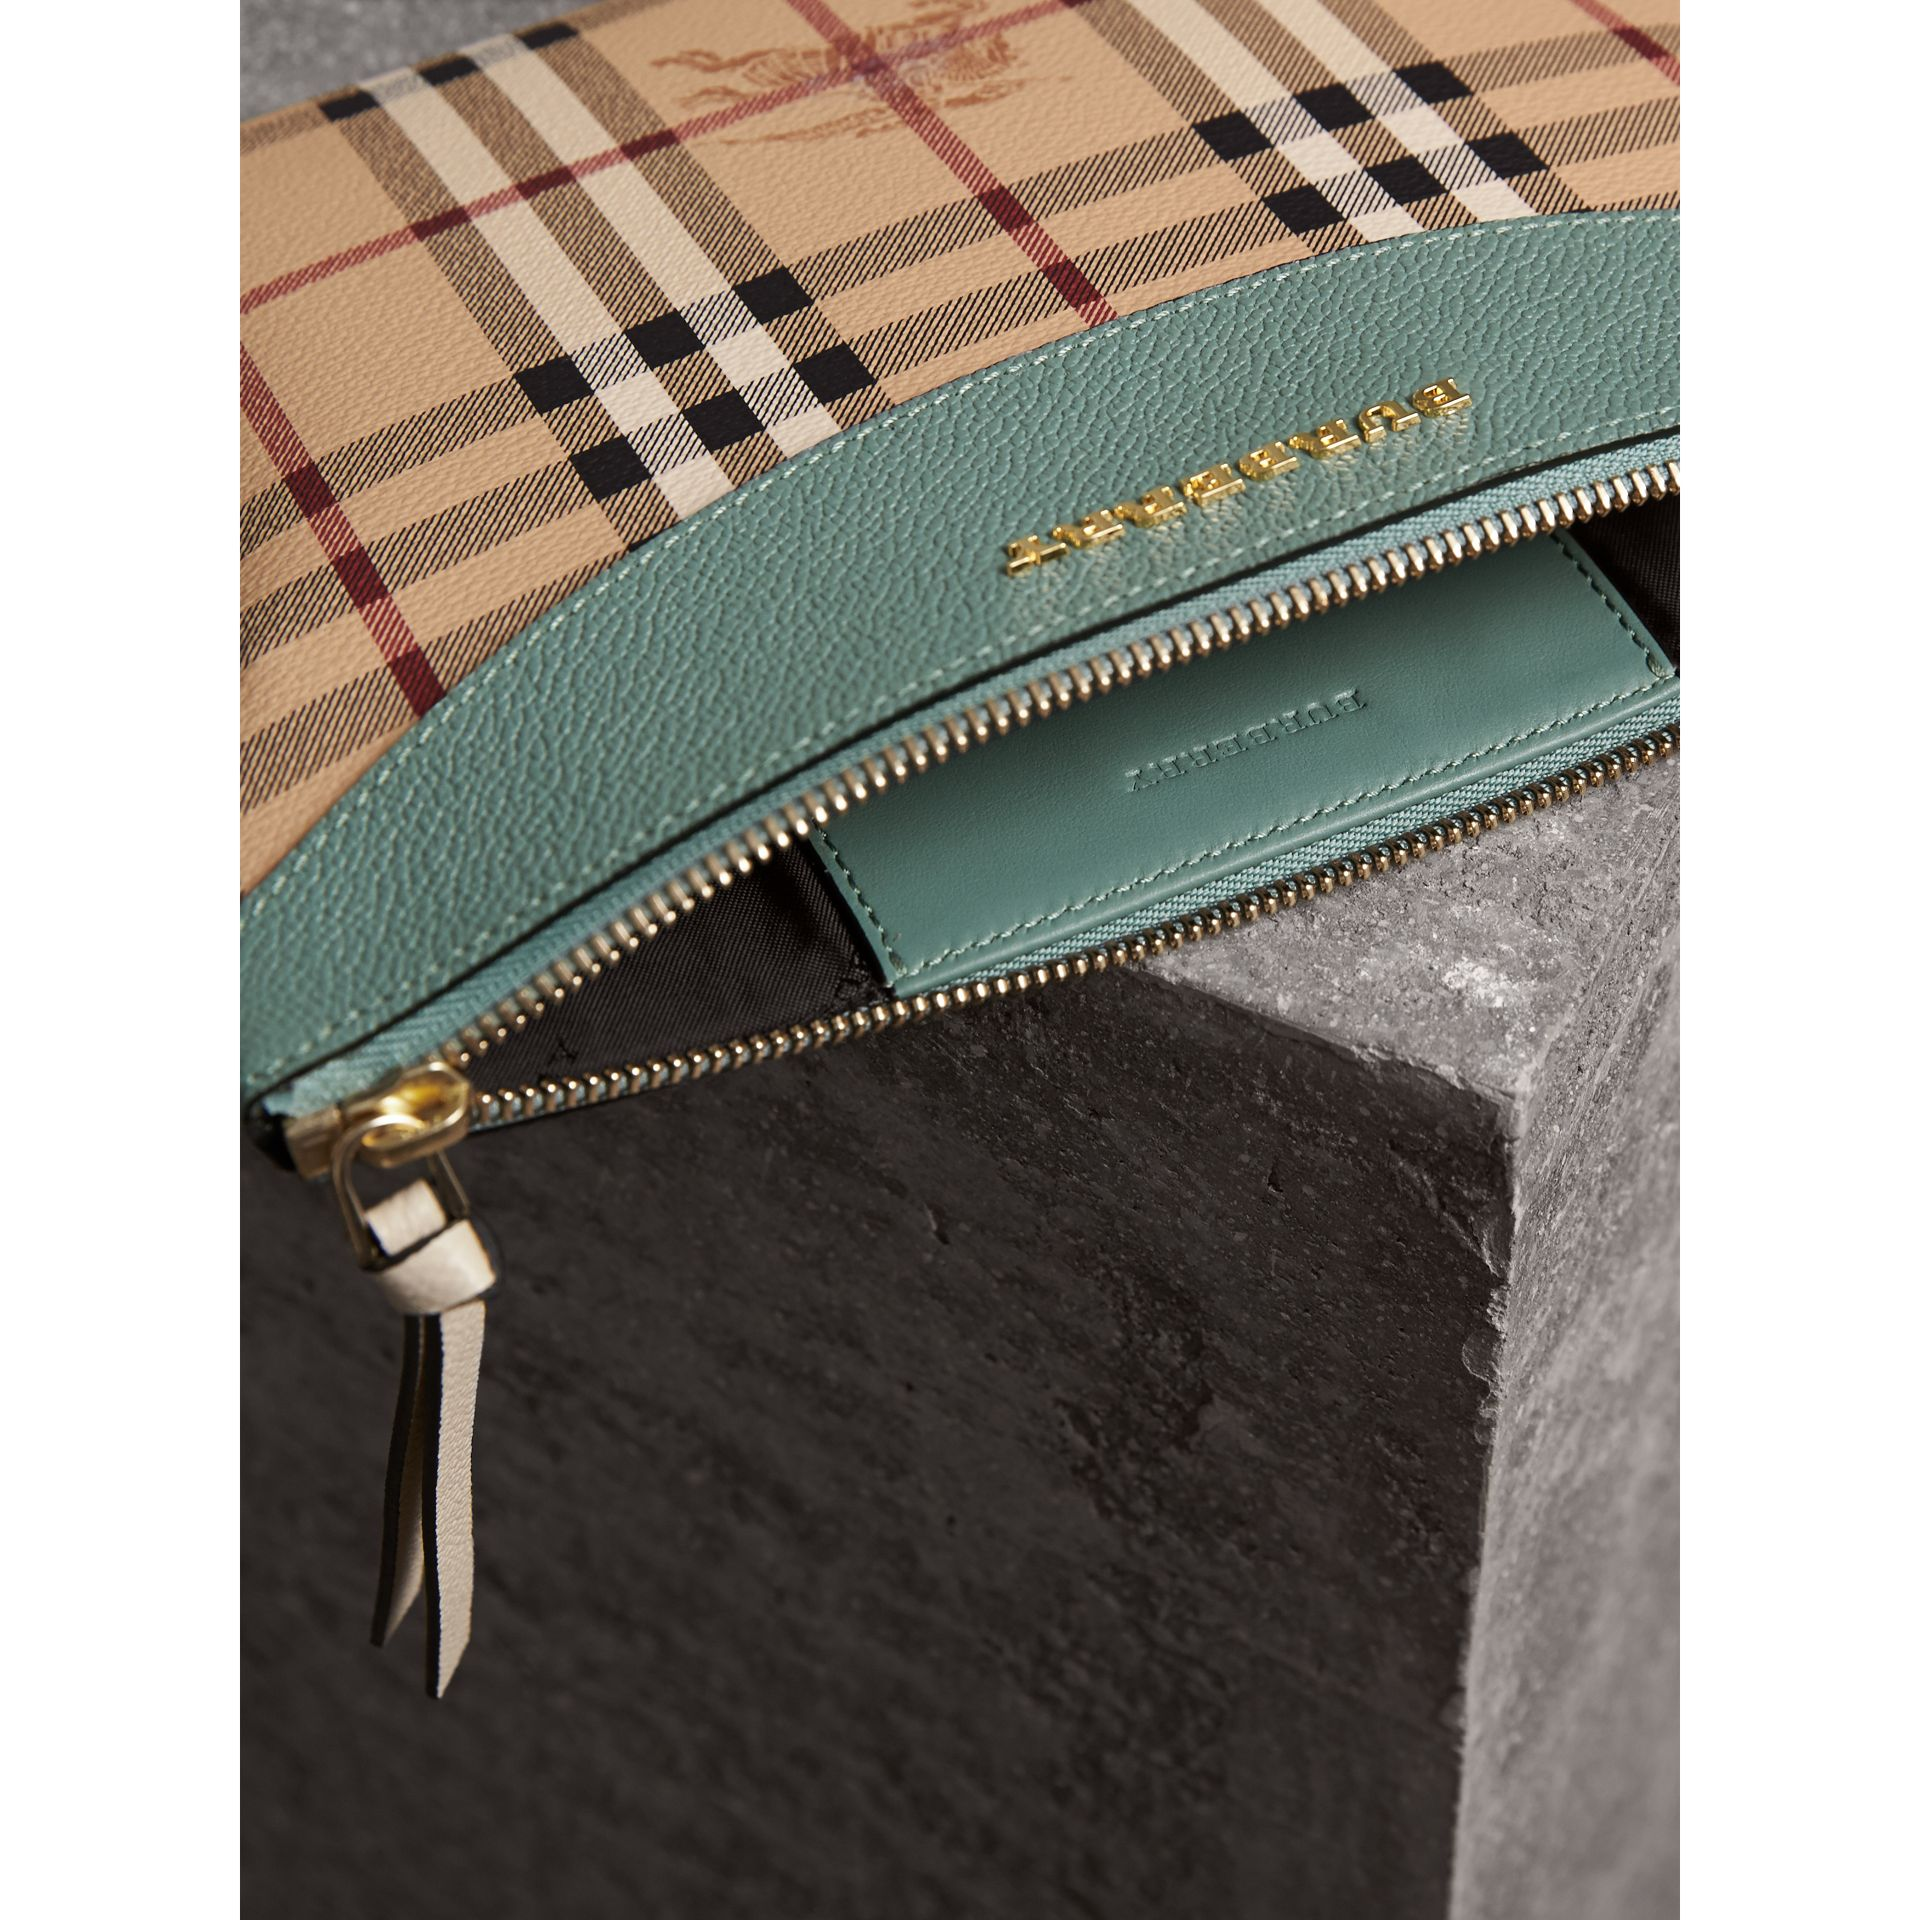 Haymarket Check and Two-tone Leather Clutch Bag in Eucalyptus Green/multicolour - Women | Burberry - gallery image 5